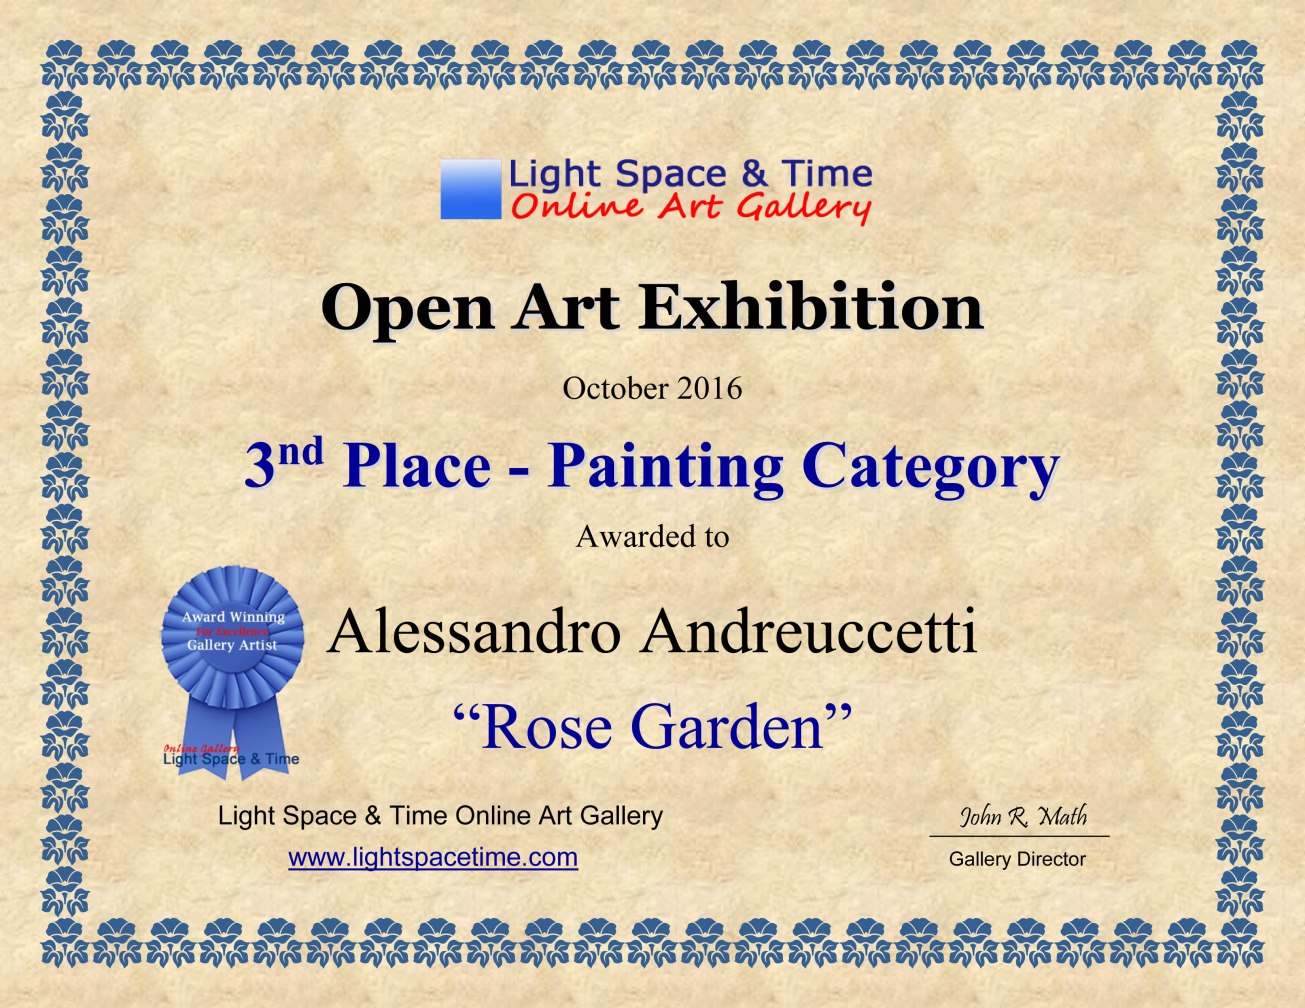 paint-3rd-place-alessandro-andreuccetti-open-2016-art-exhibition-certificate